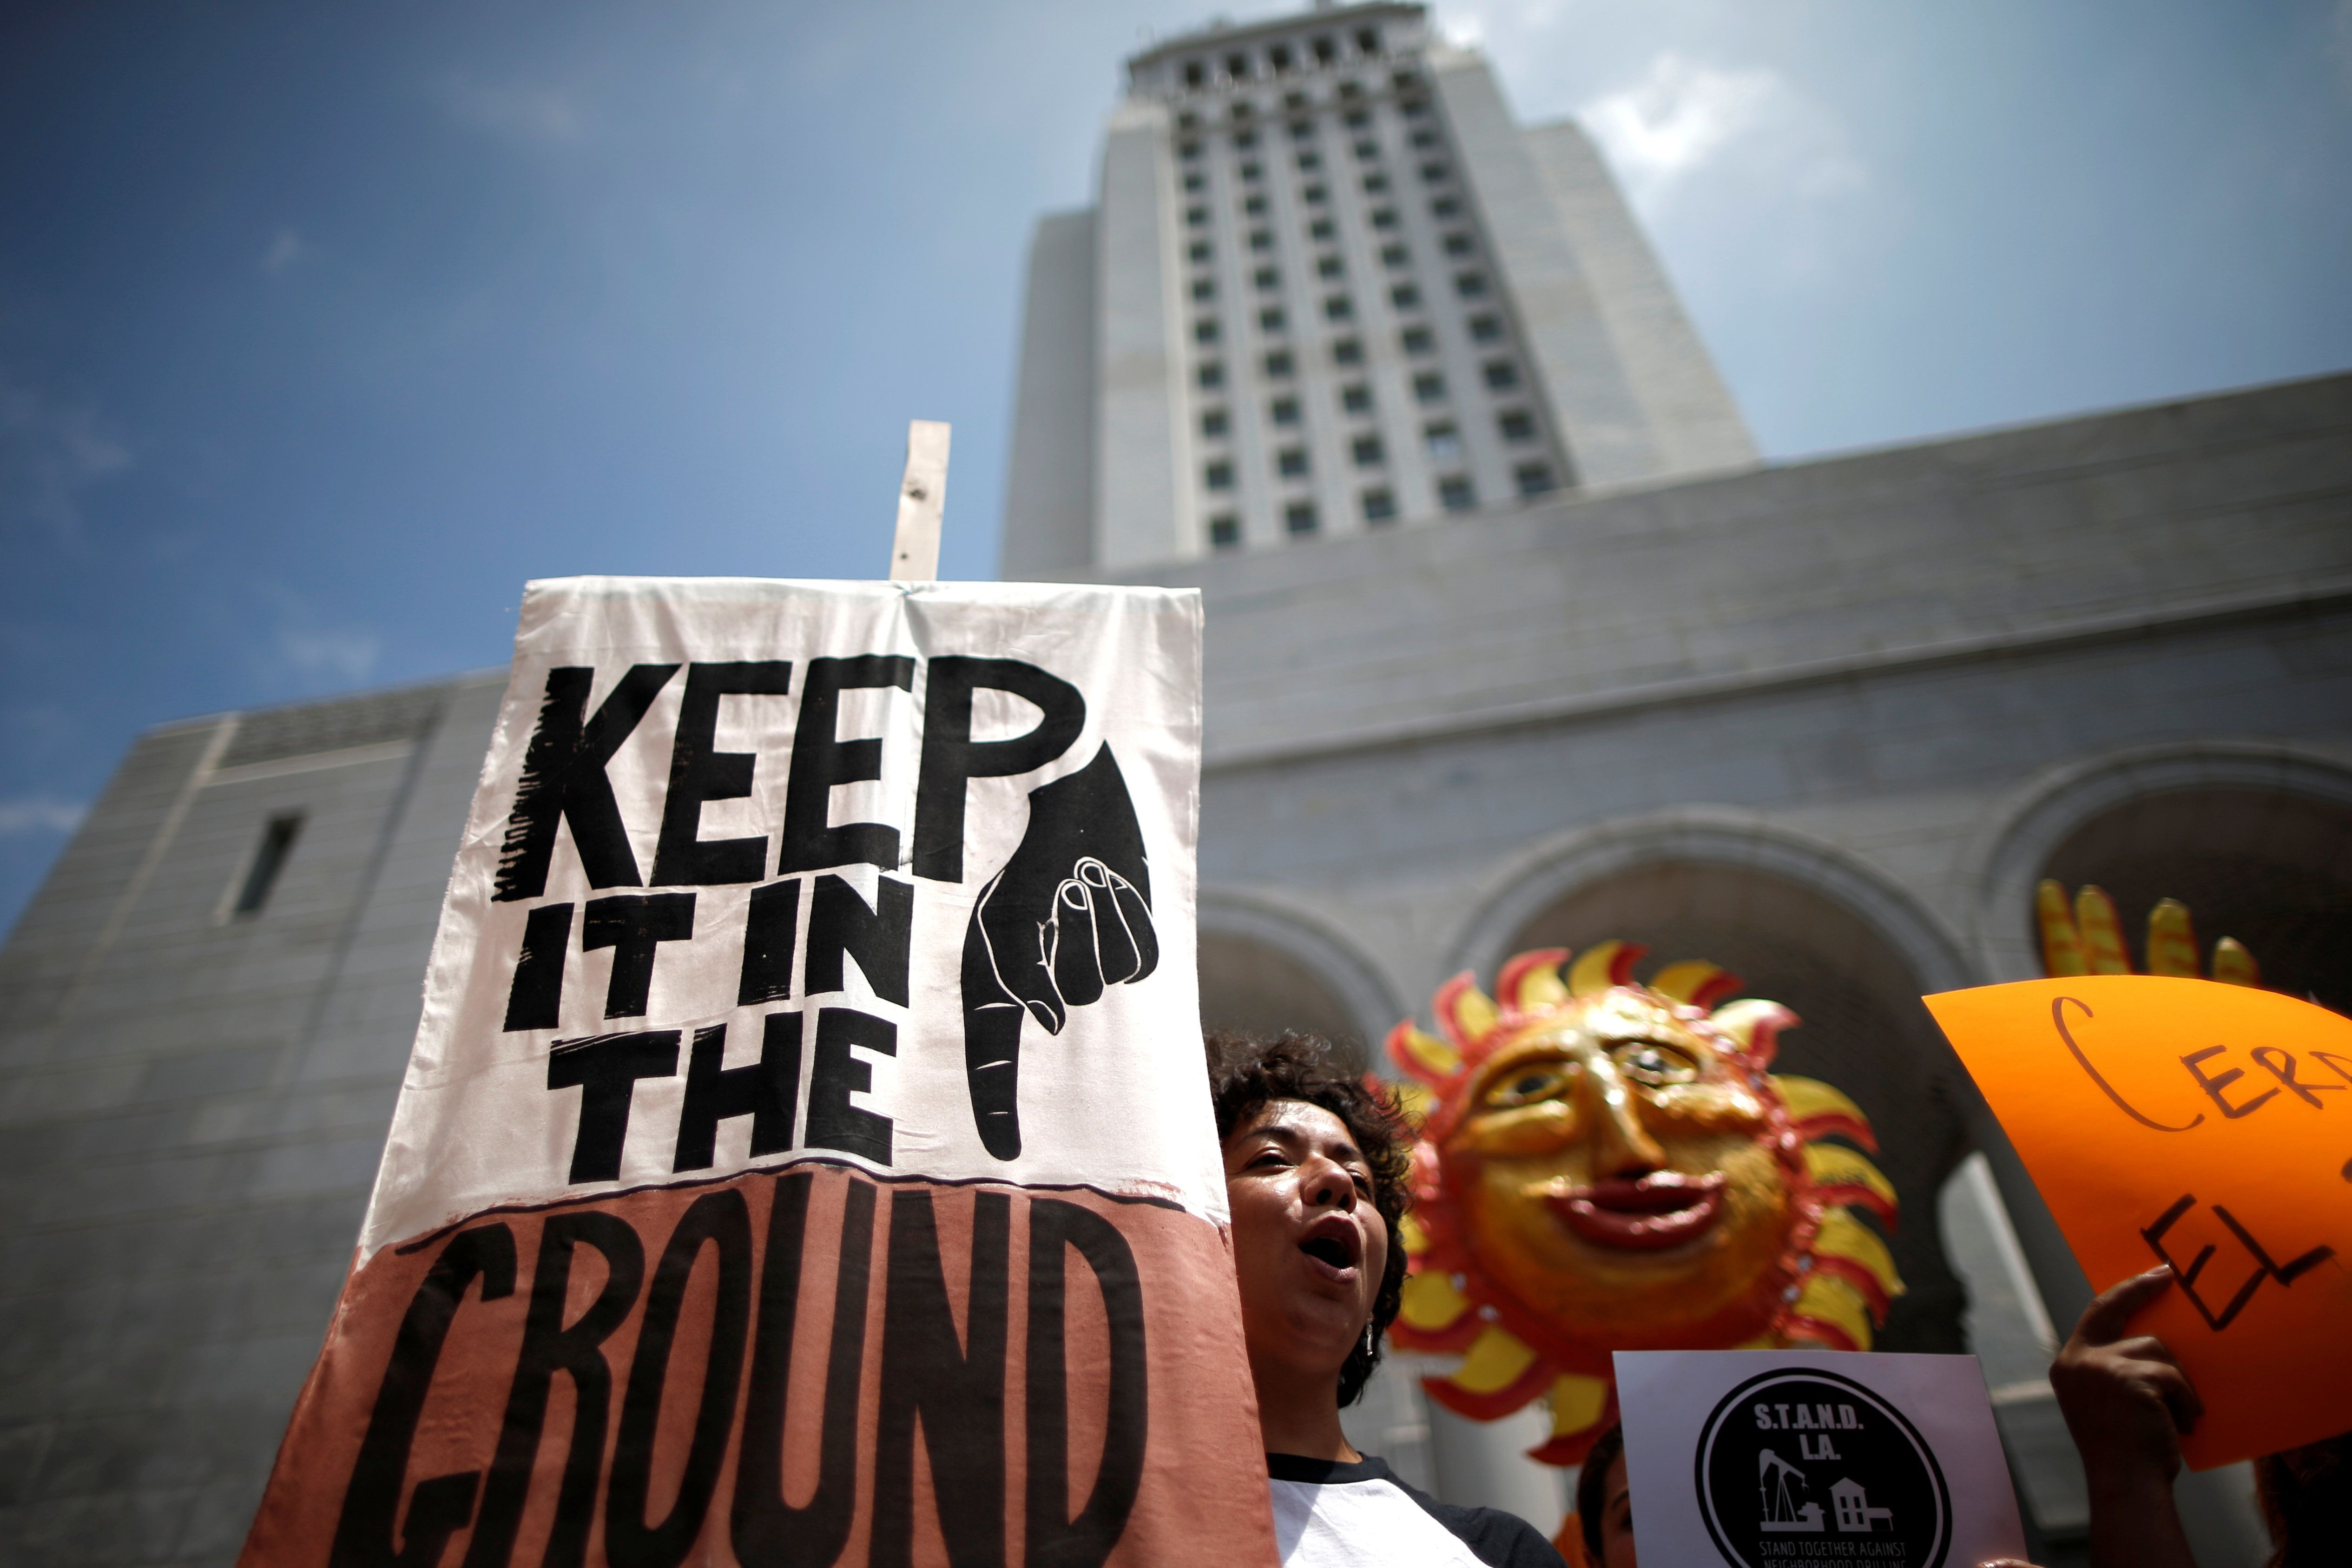 People protest against fracking and neighborhood oil drilling in Los Angeles, California, U.S., May 14, 2016. REUTERS/Lucy Nicholson